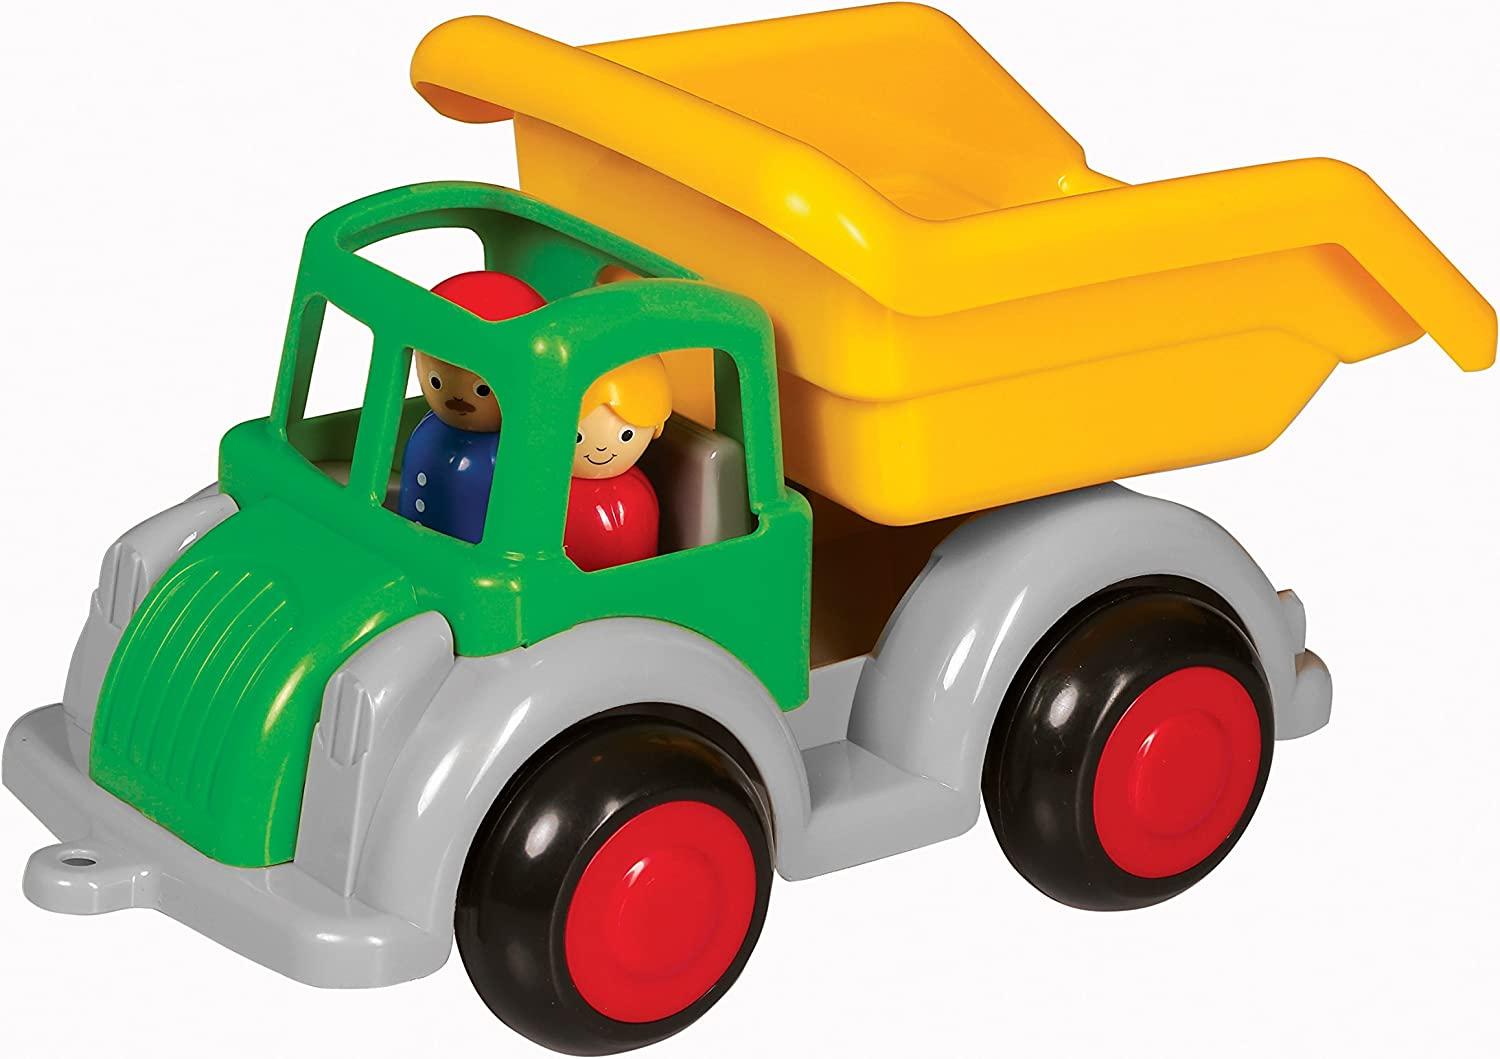 Dishwasher Safe 10 Vehicle with 2 Removable Figures Ages 1 and Up Indoor /& Outdoor Use Really Dumps! Viking Large Fun Color Dump Truck